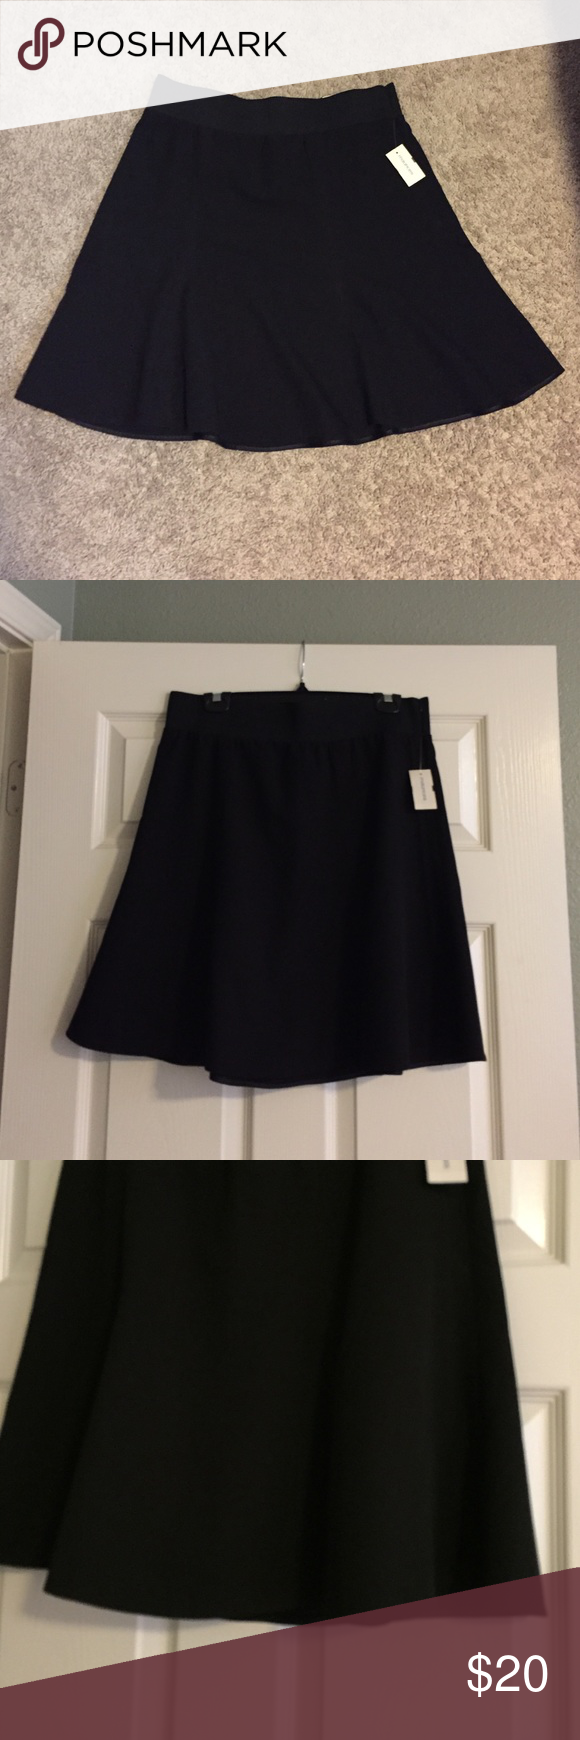 💥Final Price Drop💥 Black Skirt Never worn! Not a straight skirt has flow to it! Maurices Skirts Midi